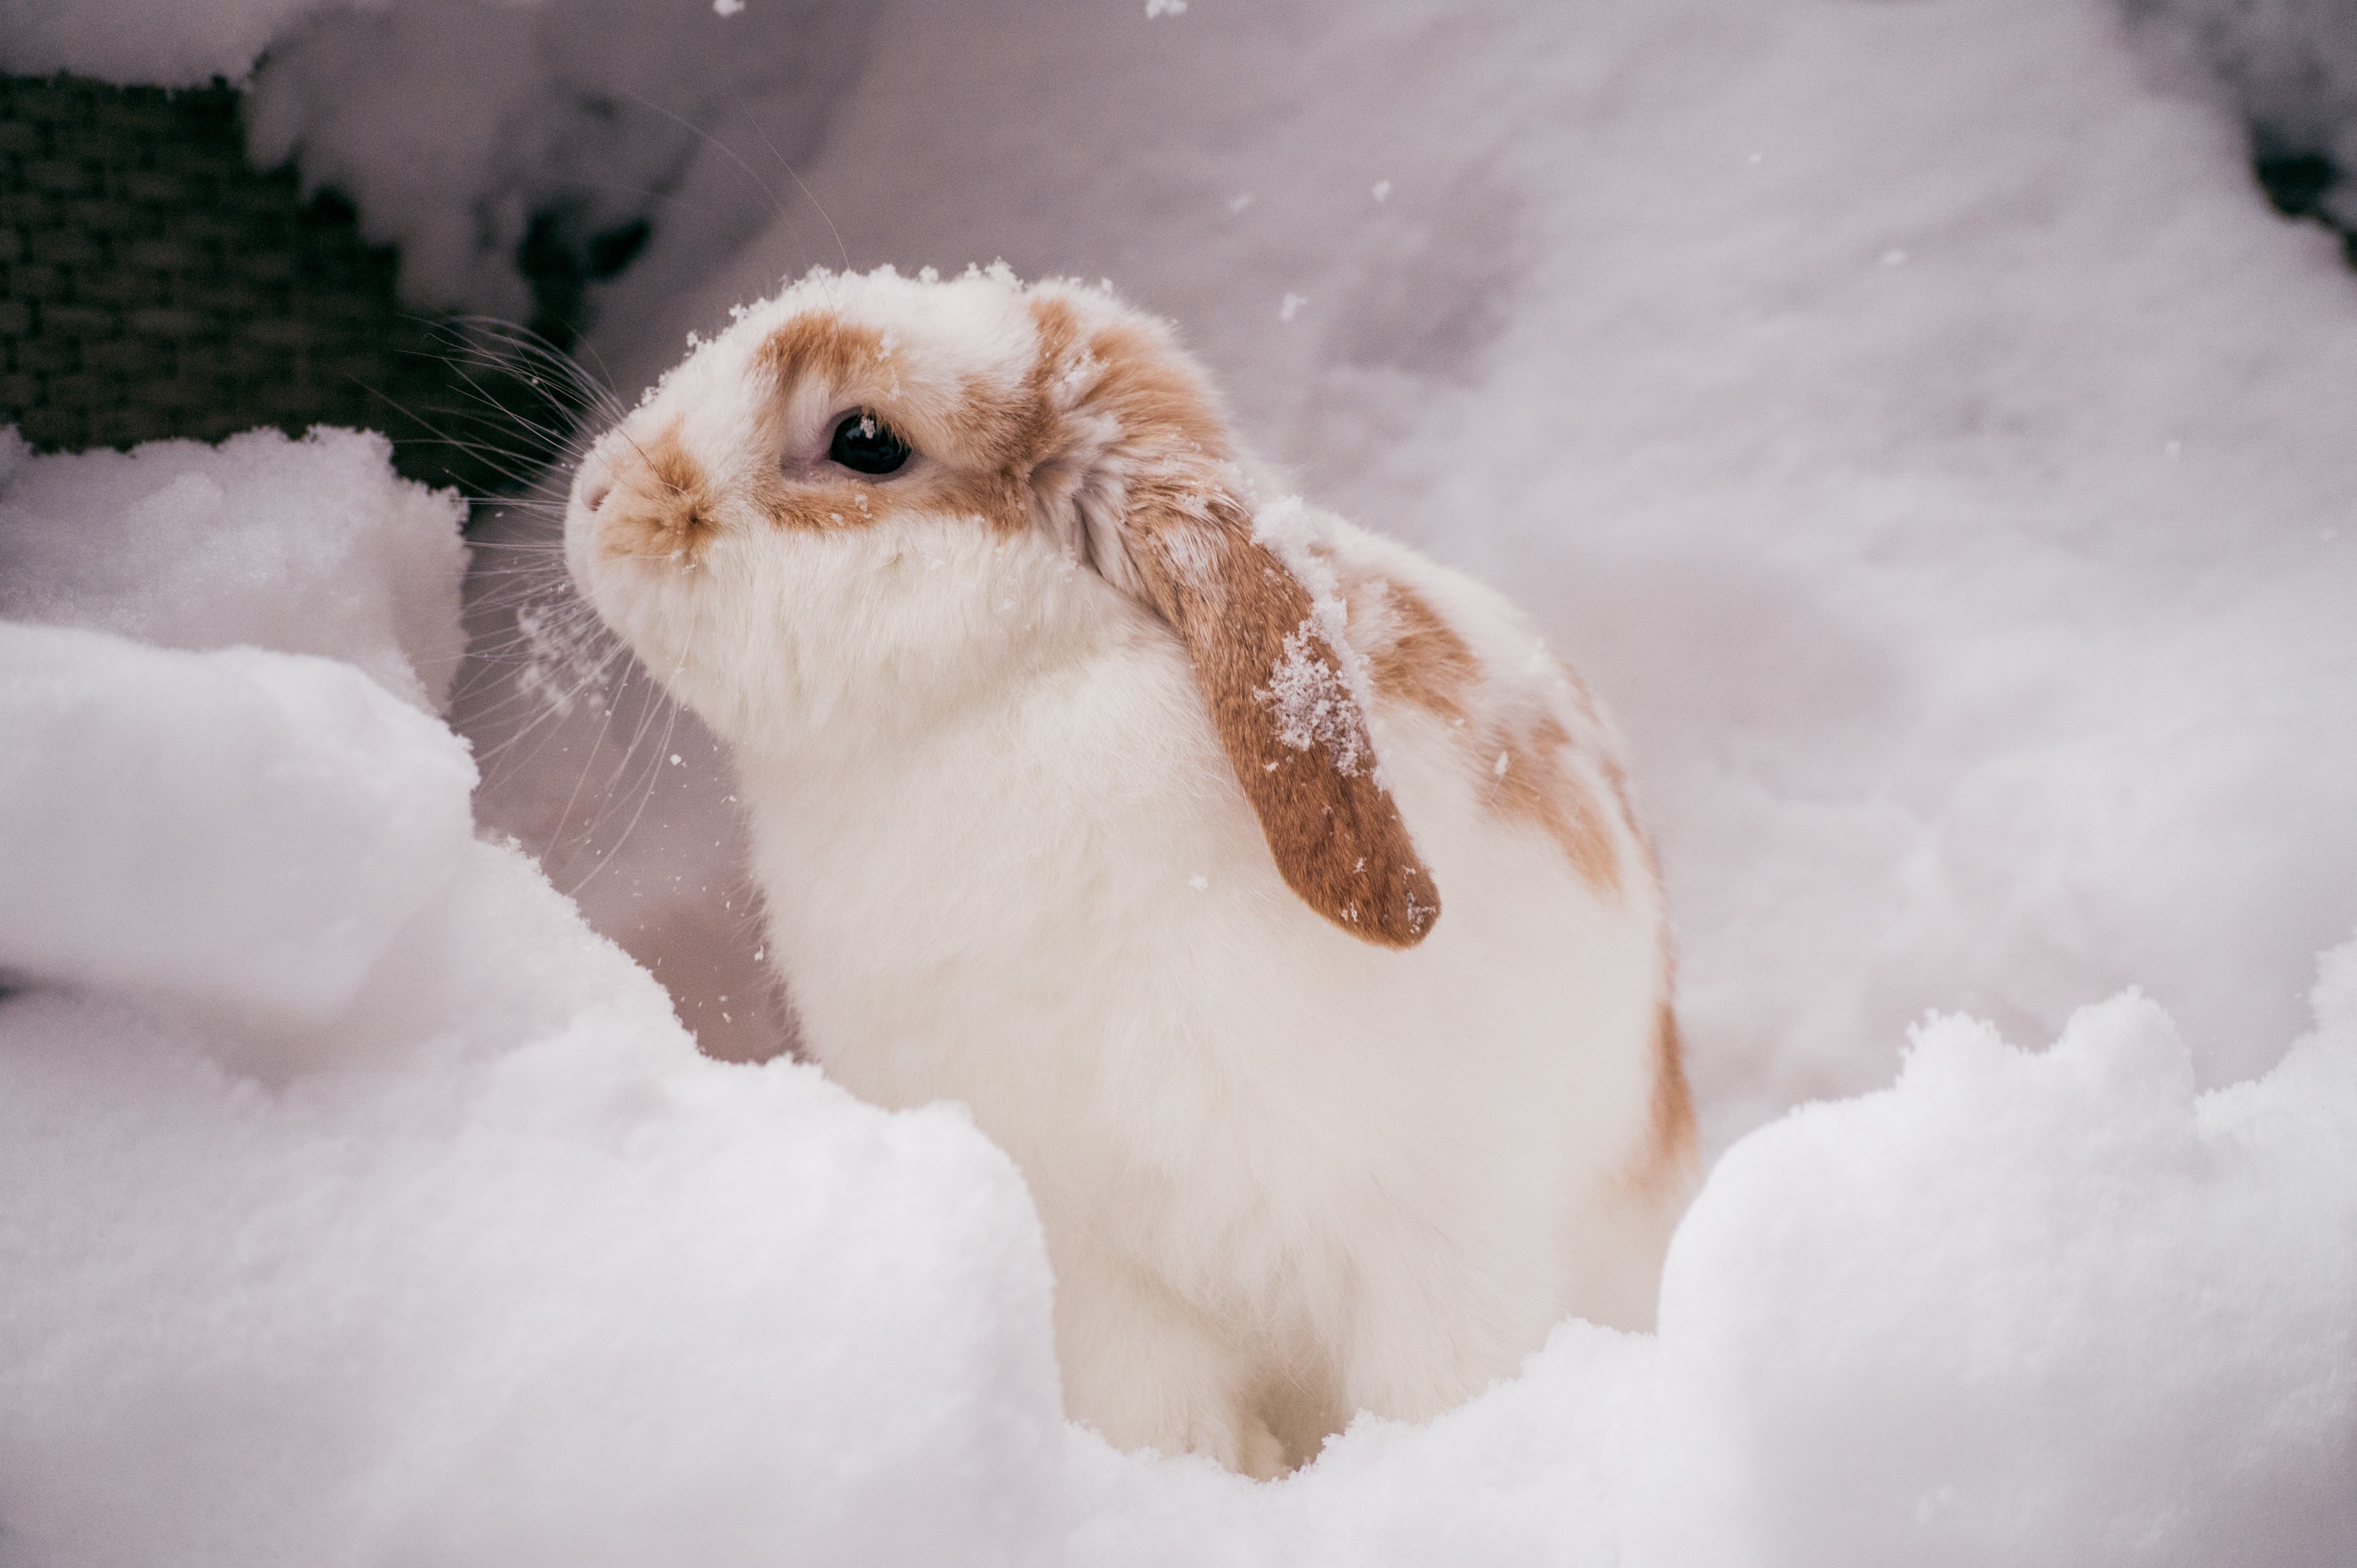 Seasonal pet care for Rabbits and Guinea Pigs